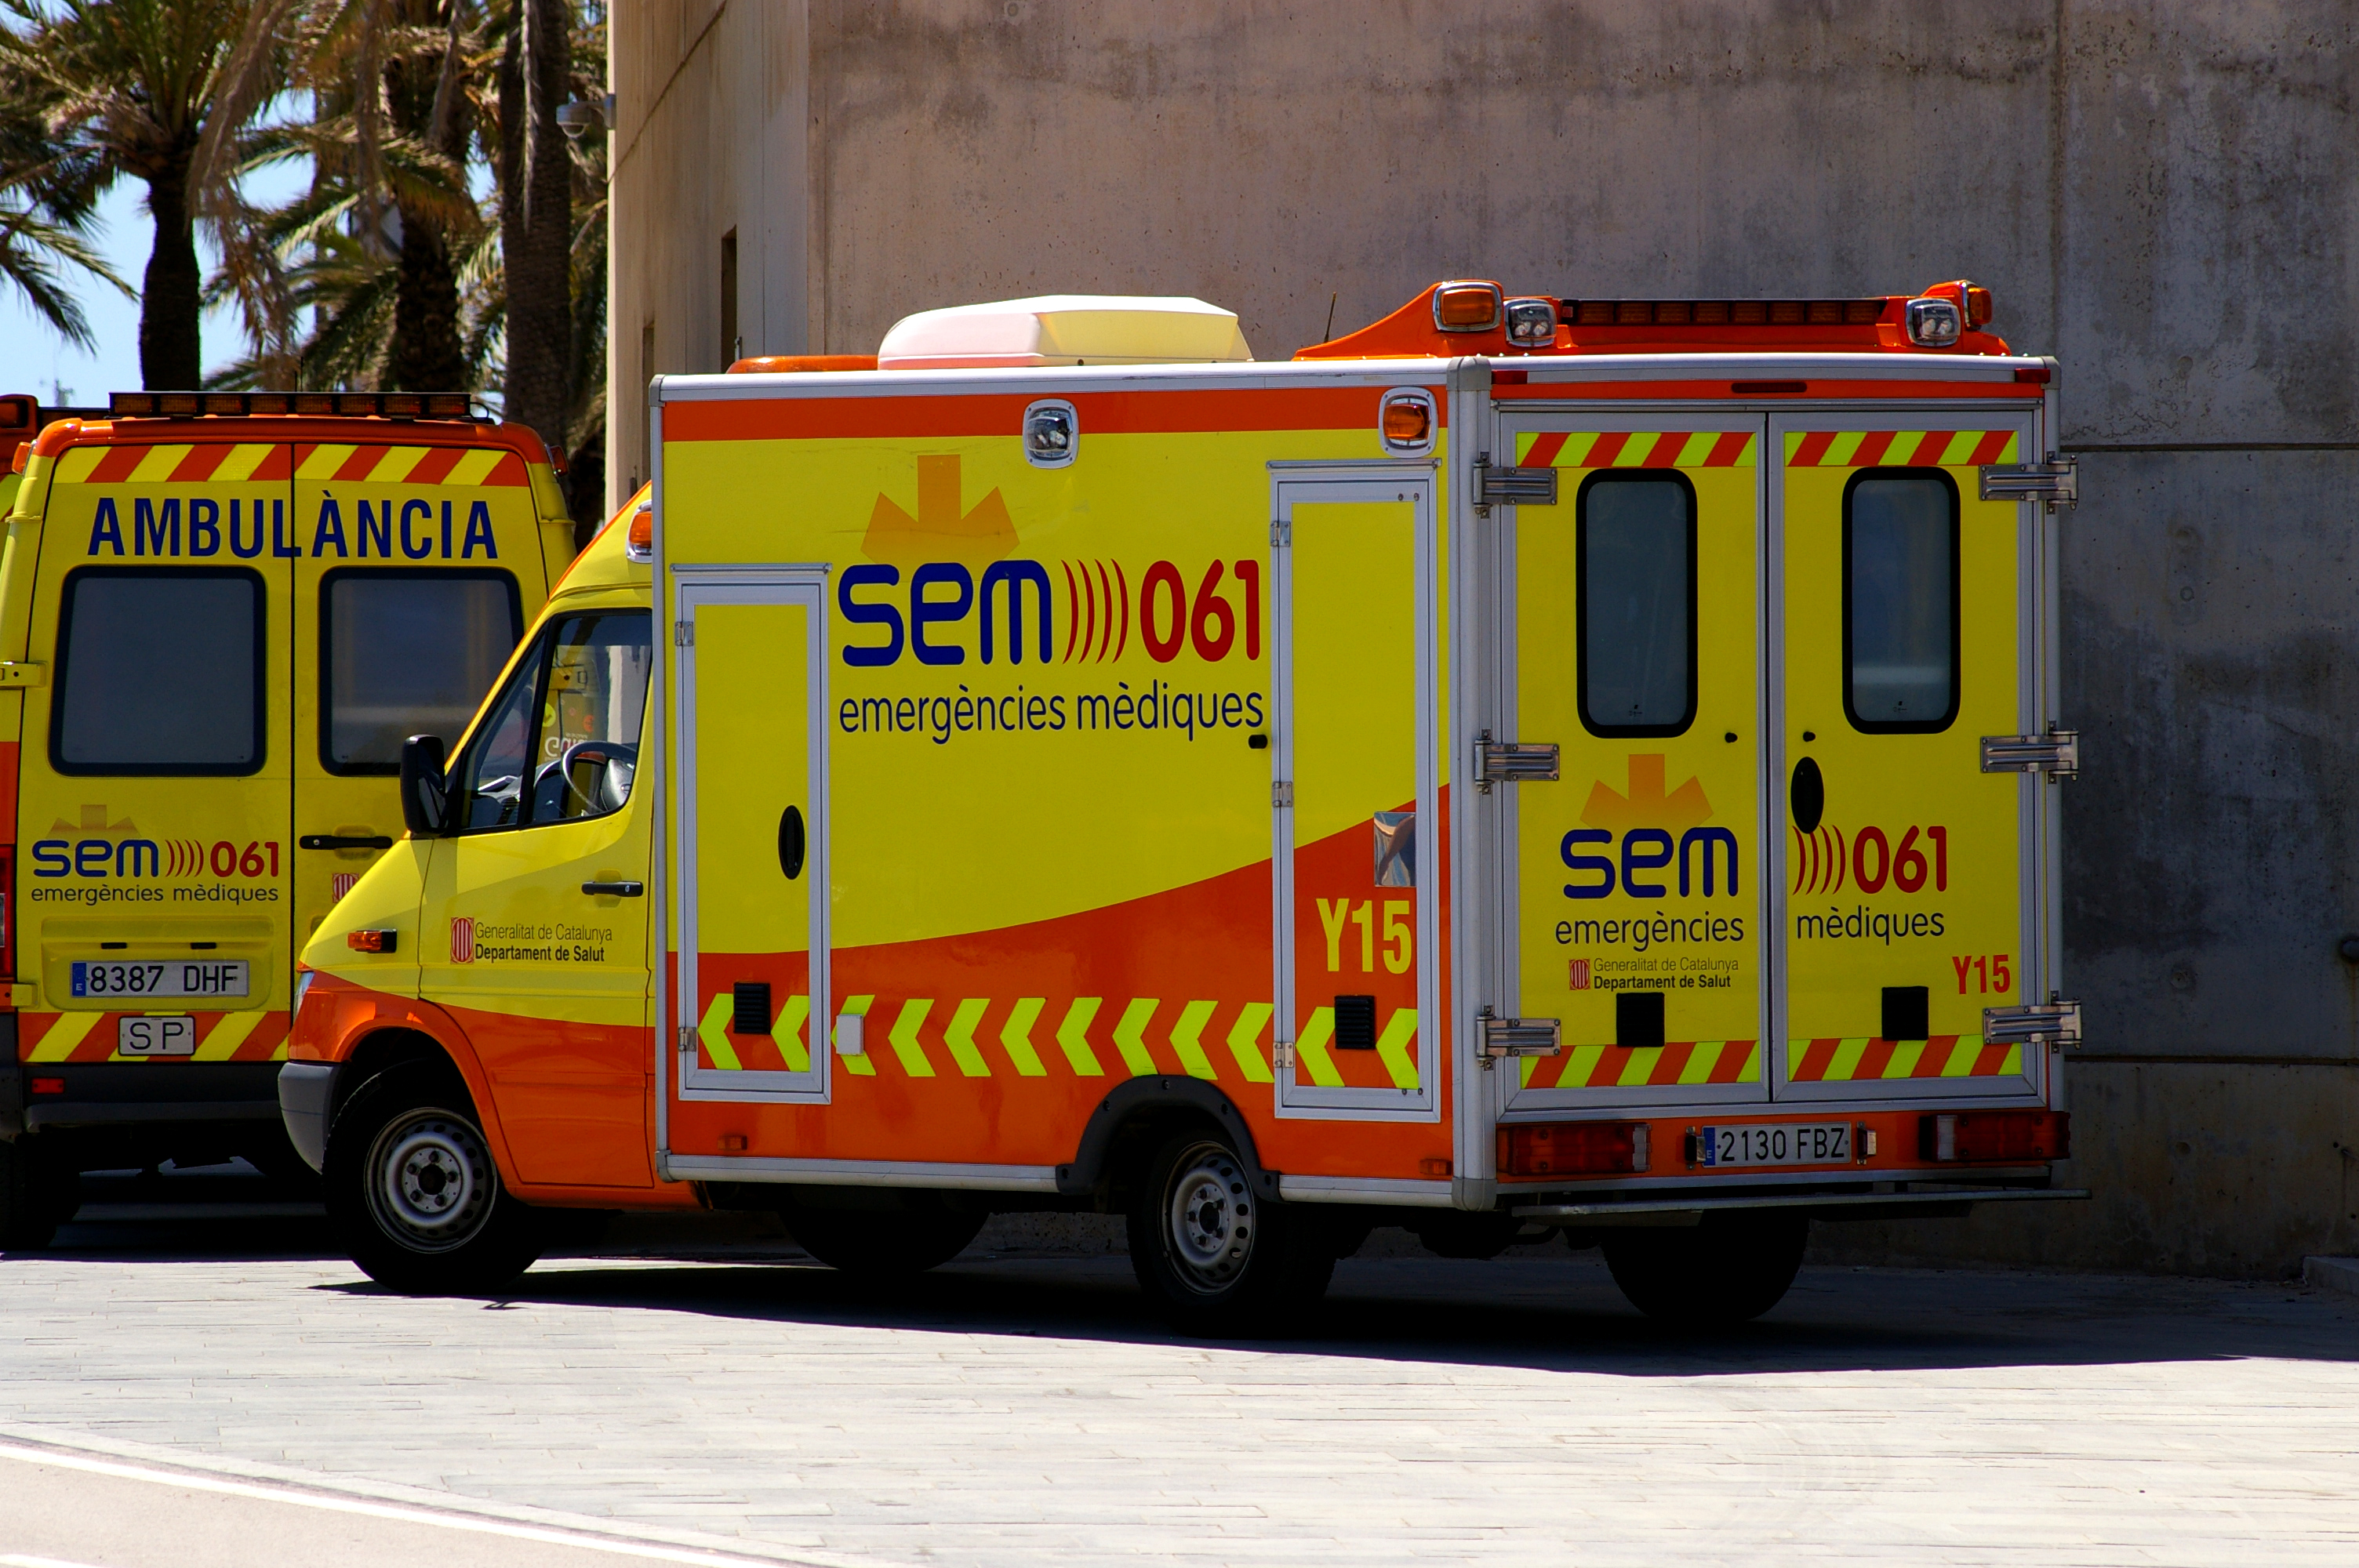 Emergency medical services in Spain - Wikipedia